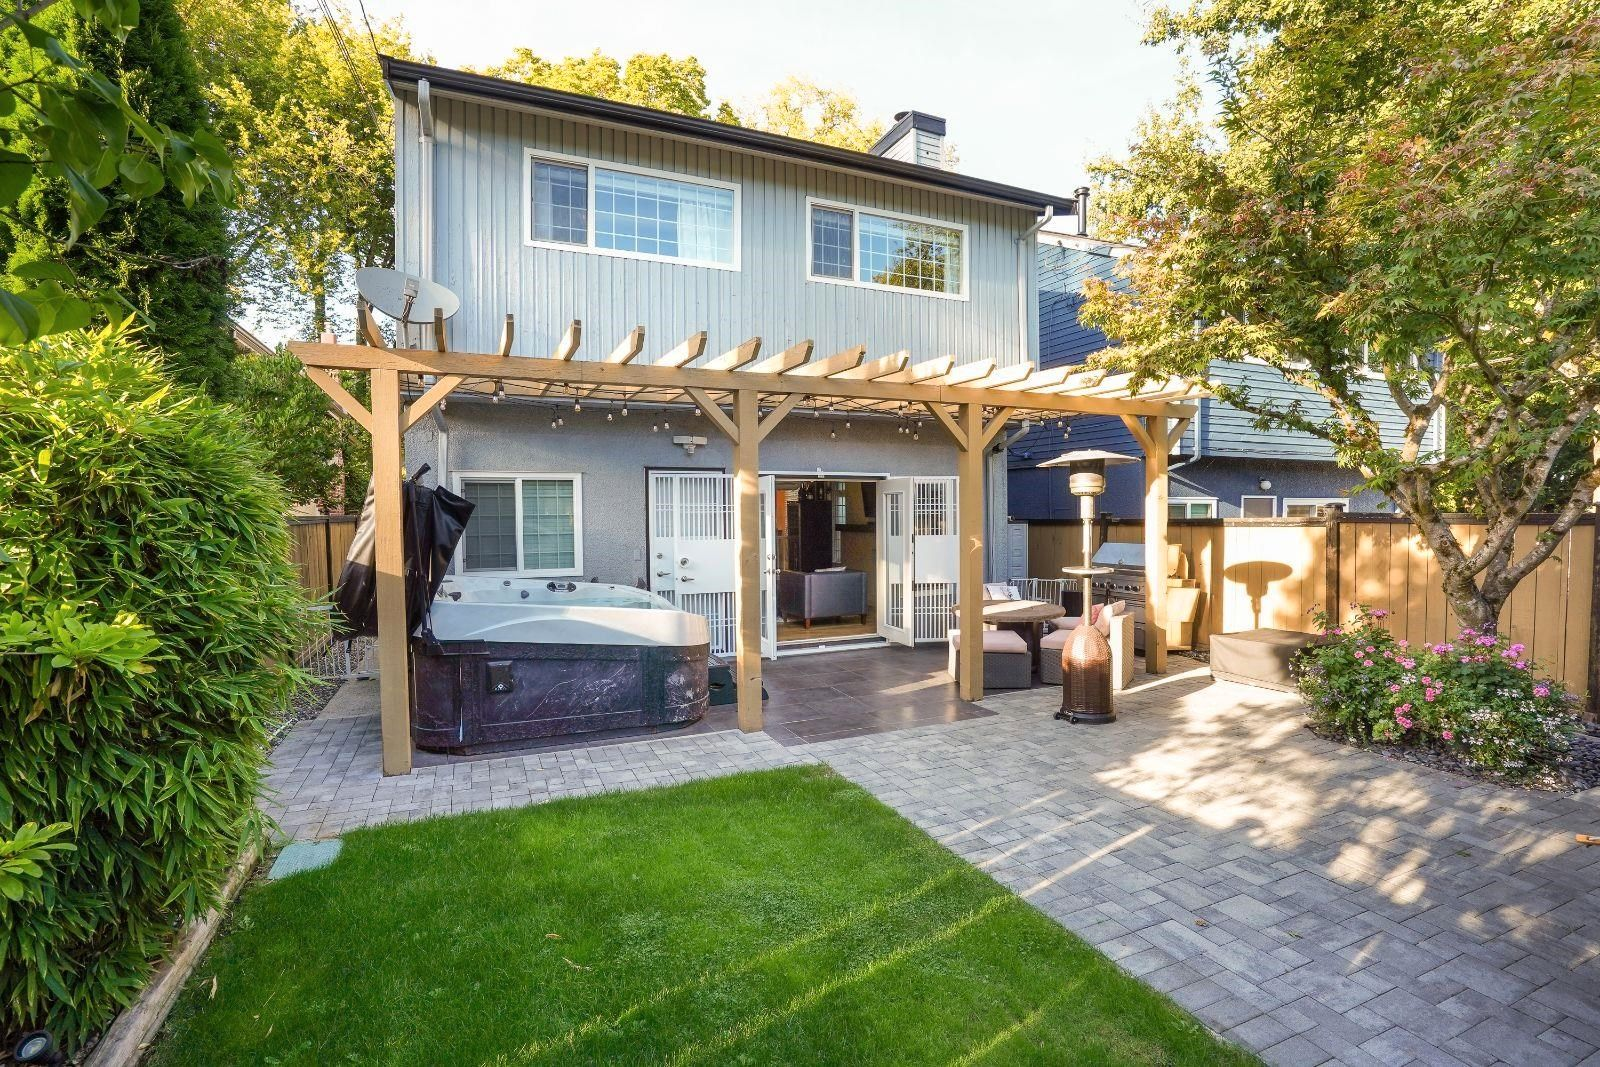 Main Photo: 3508 W 24TH Avenue in Vancouver: Dunbar House for sale (Vancouver West)  : MLS®# R2623539